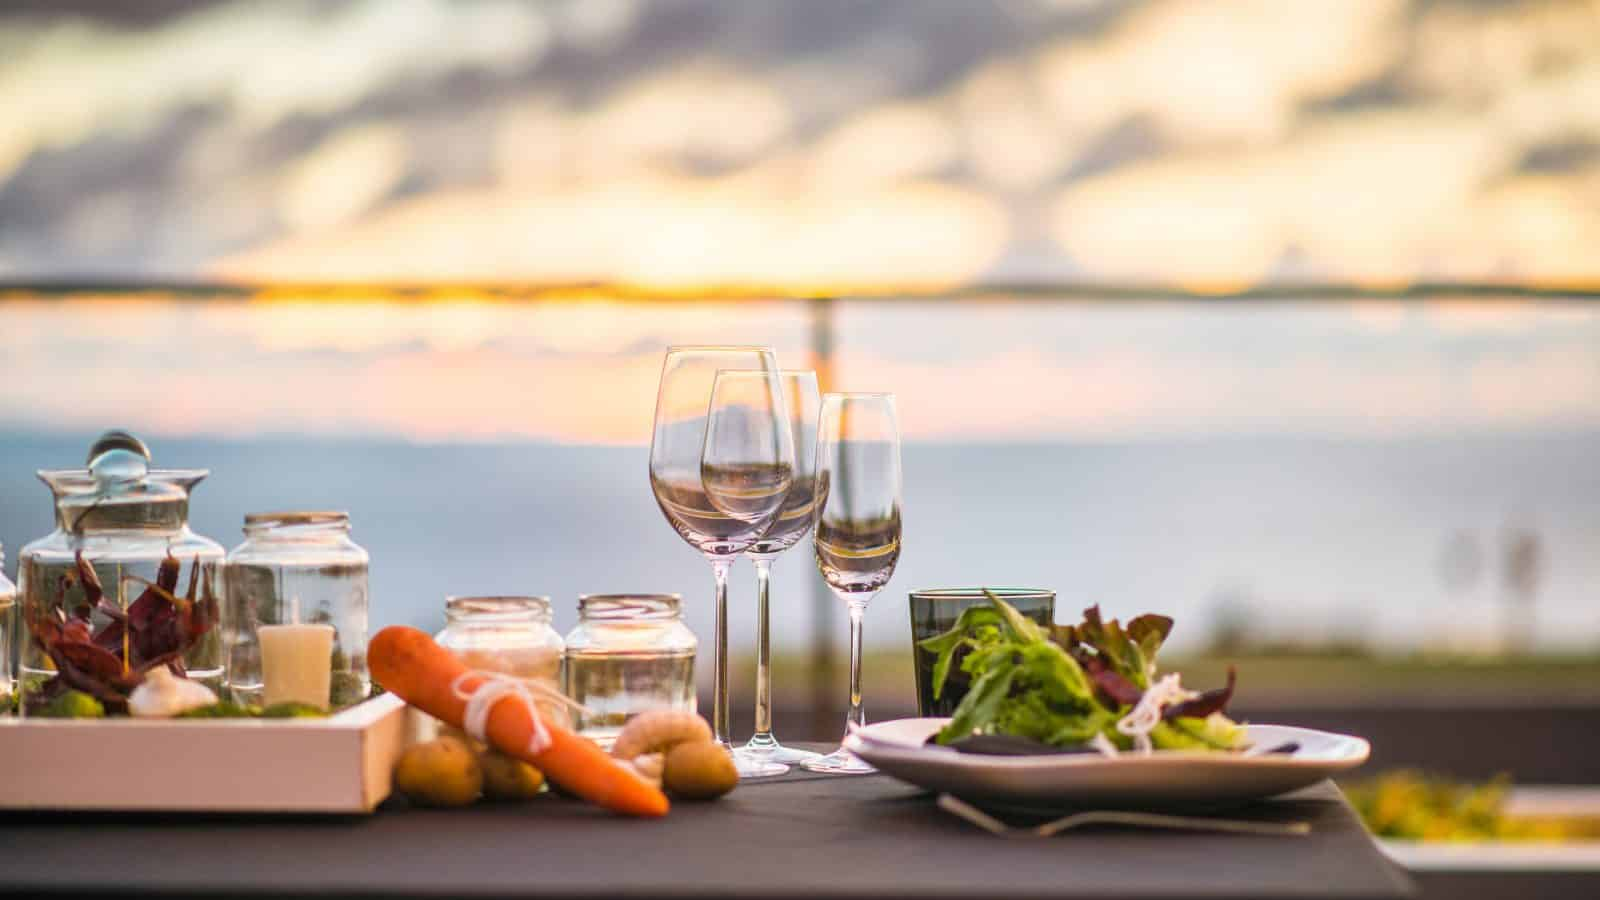 A table is set for dinner overlooking the waters of Dunedin.